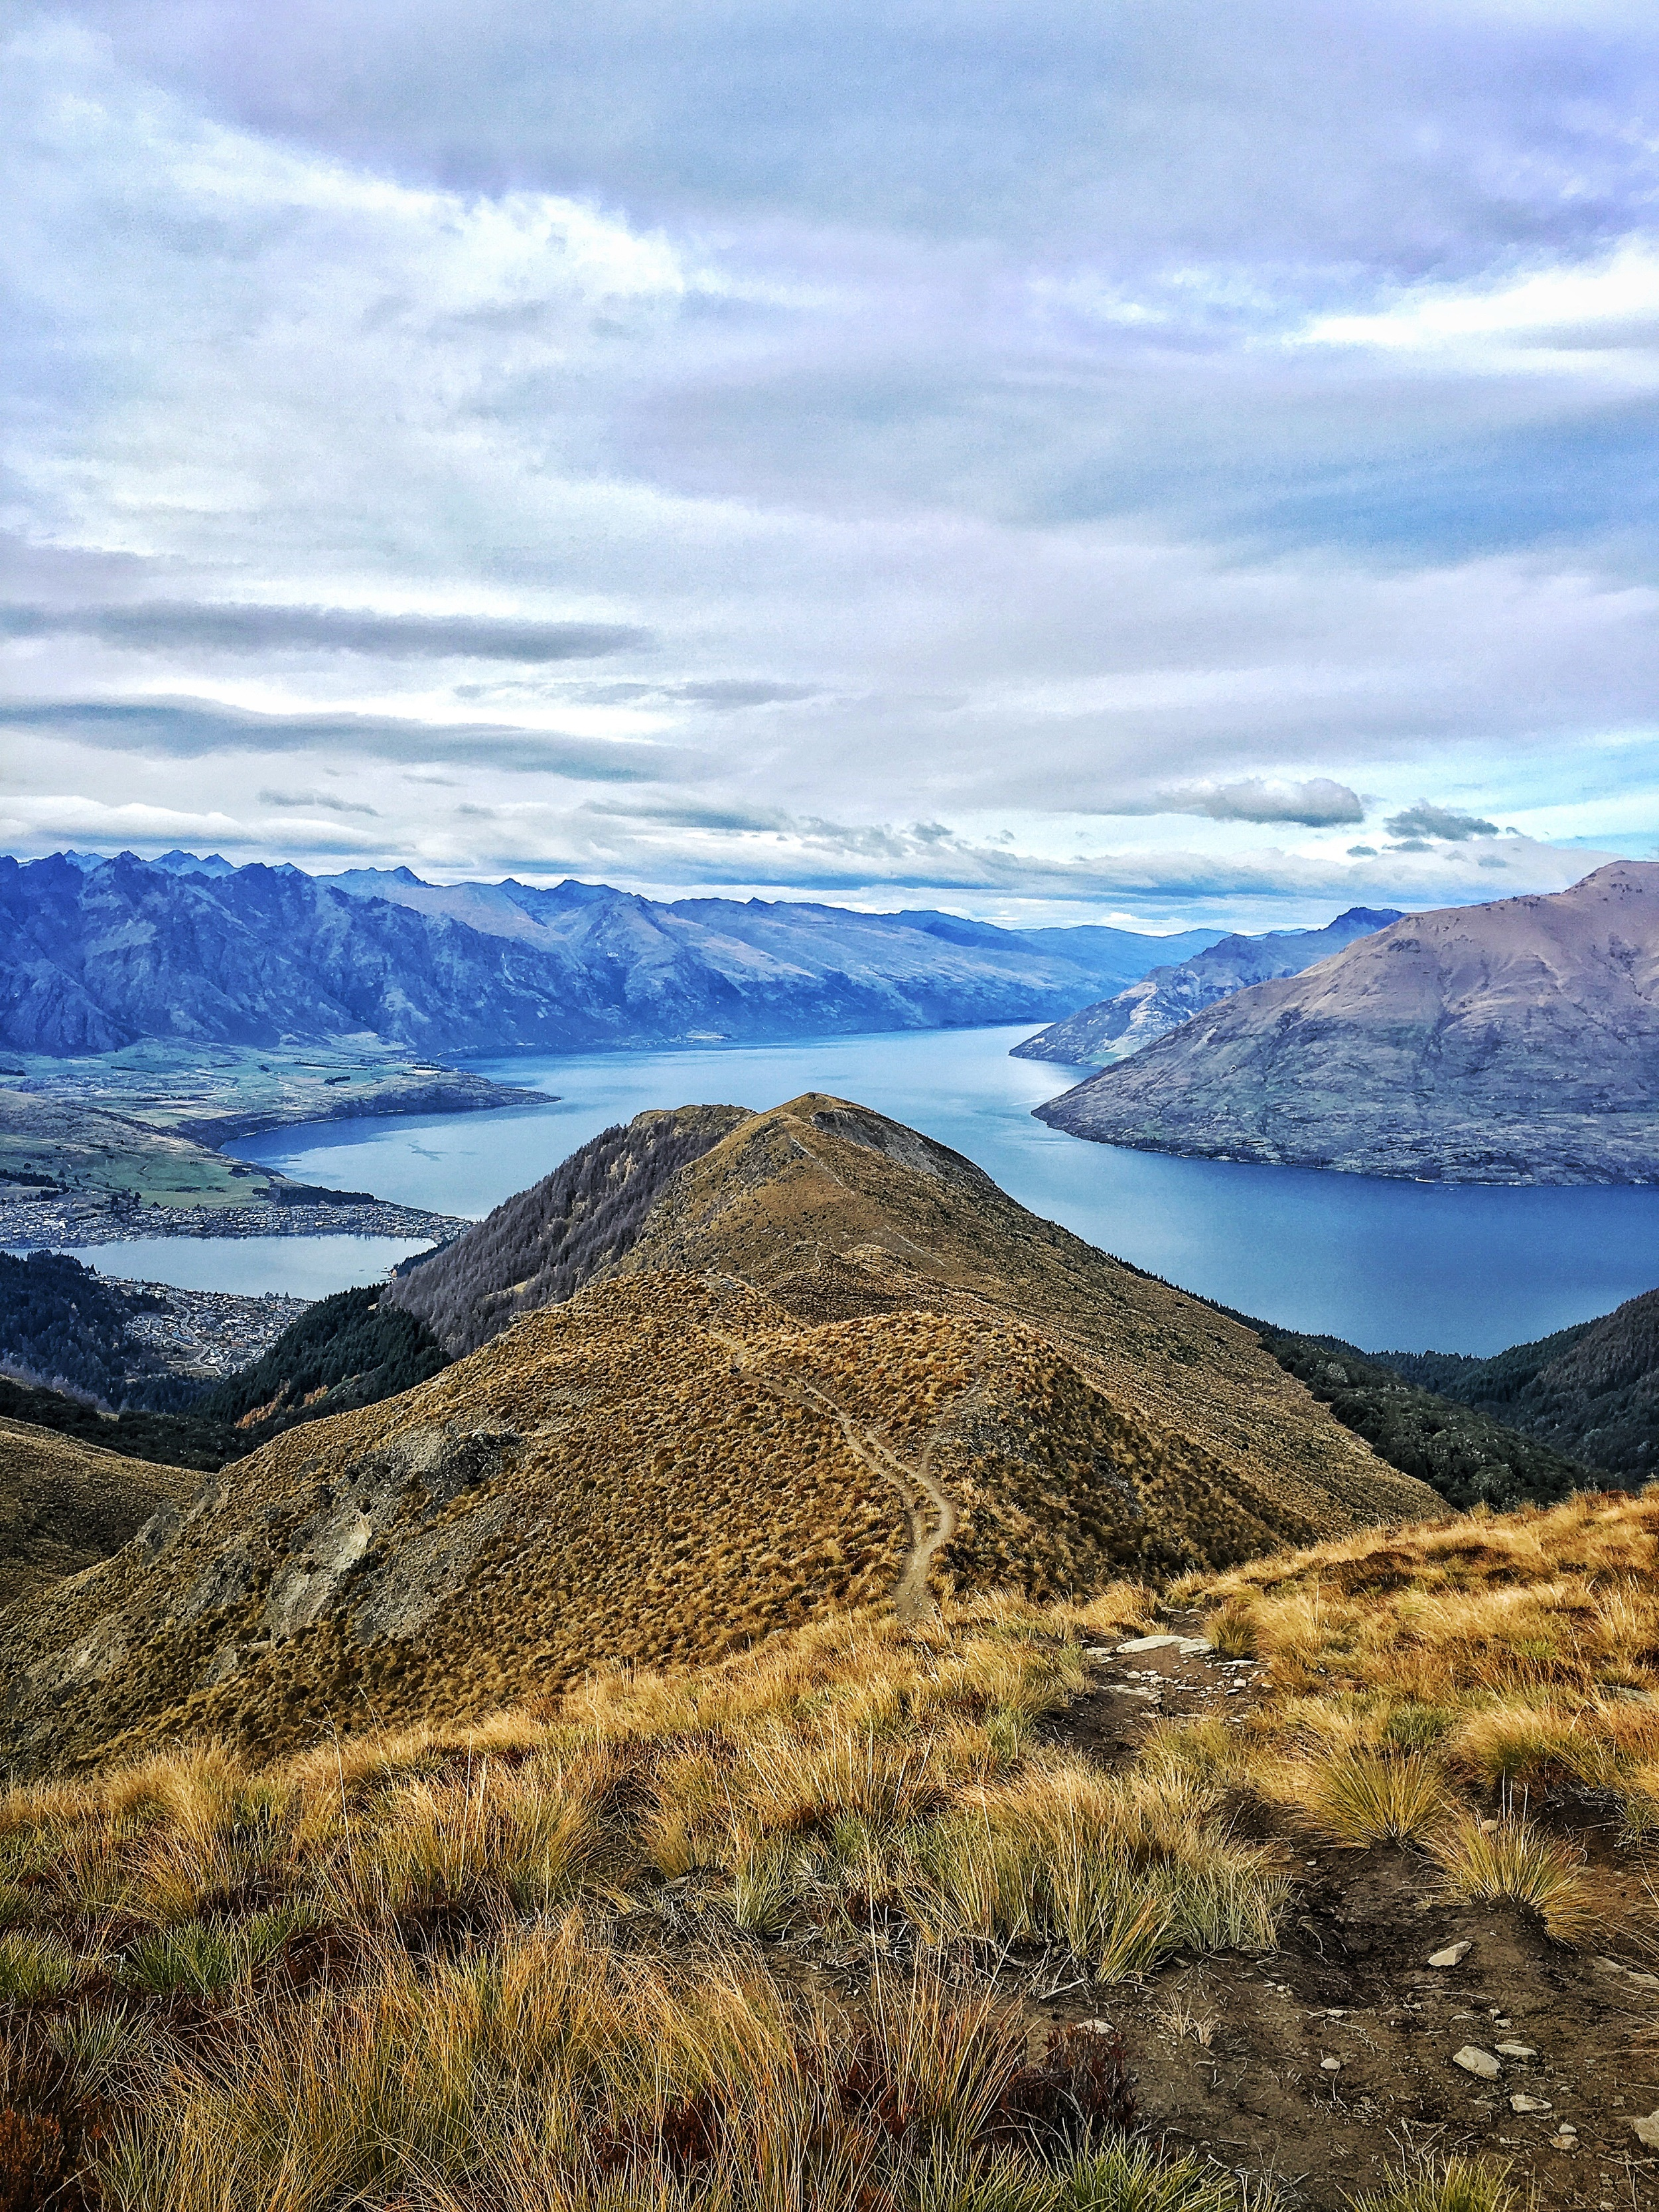 // Nearly to the Saddle, view South onto Queenstown, Lake Wakatipu, The Remarkables, and Cecil Peak